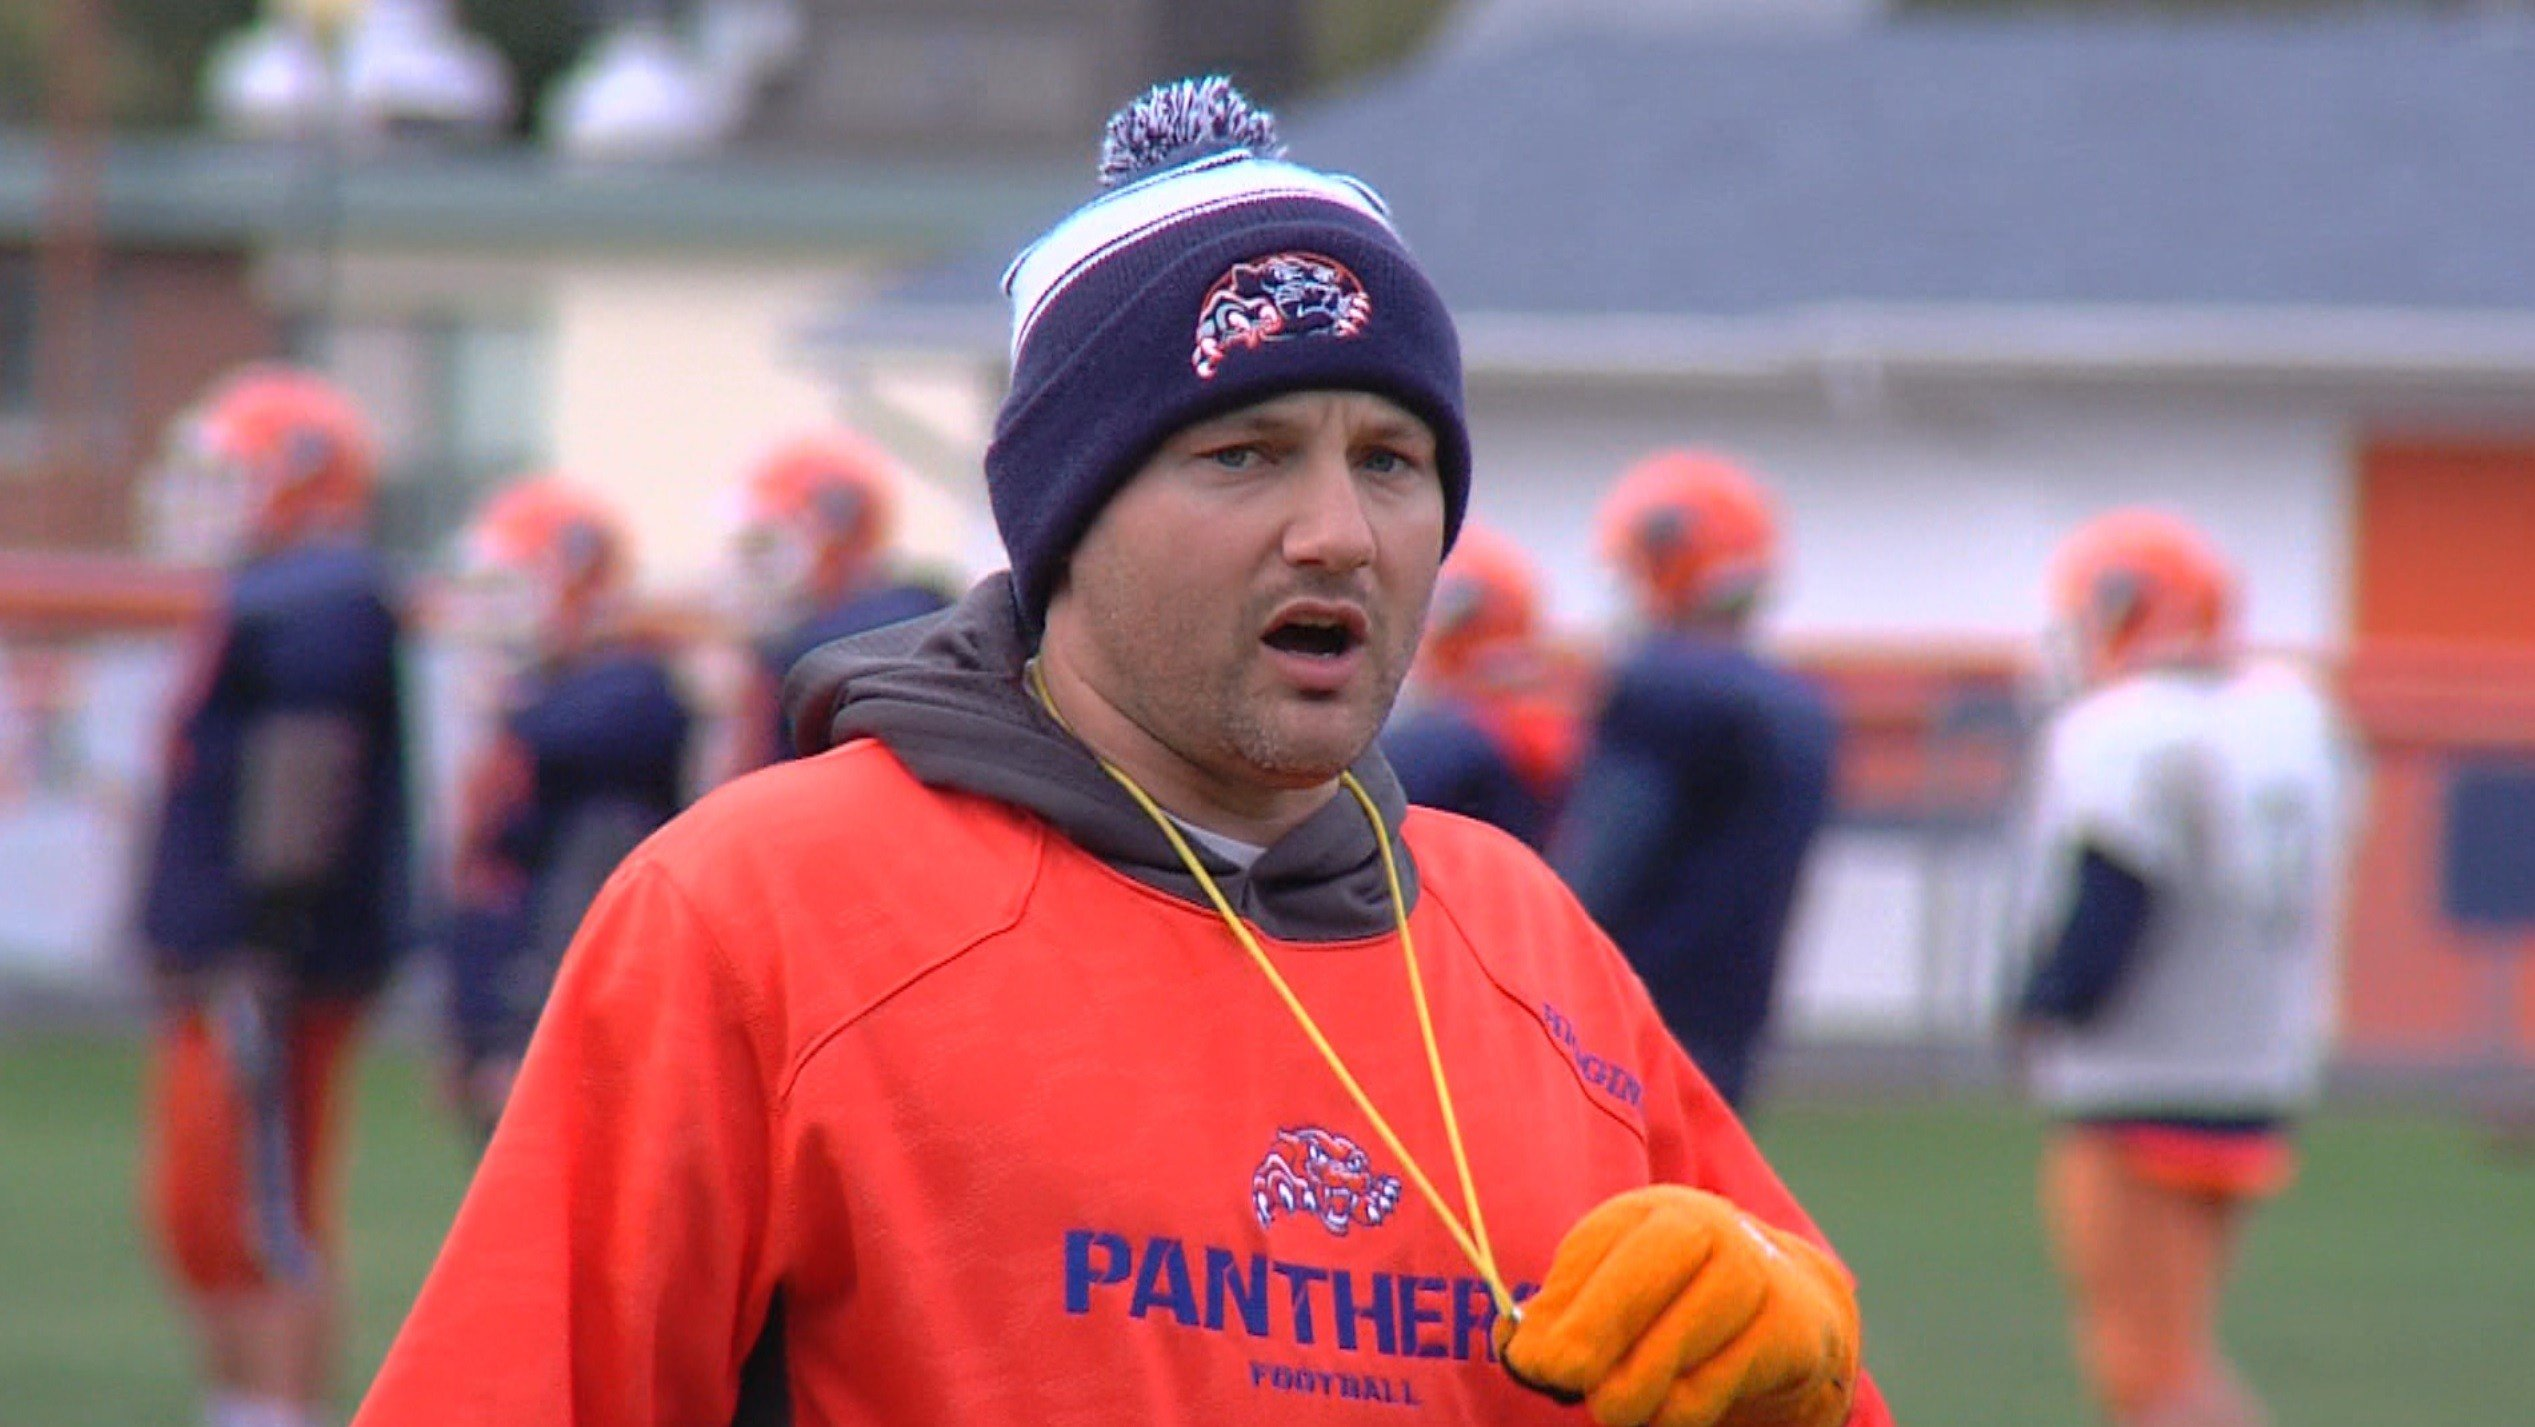 Pana head coach Trevor Higgins has led the Panthers to the 3A playoffs in each of his two seasons since taking over for program great Al Stupek.